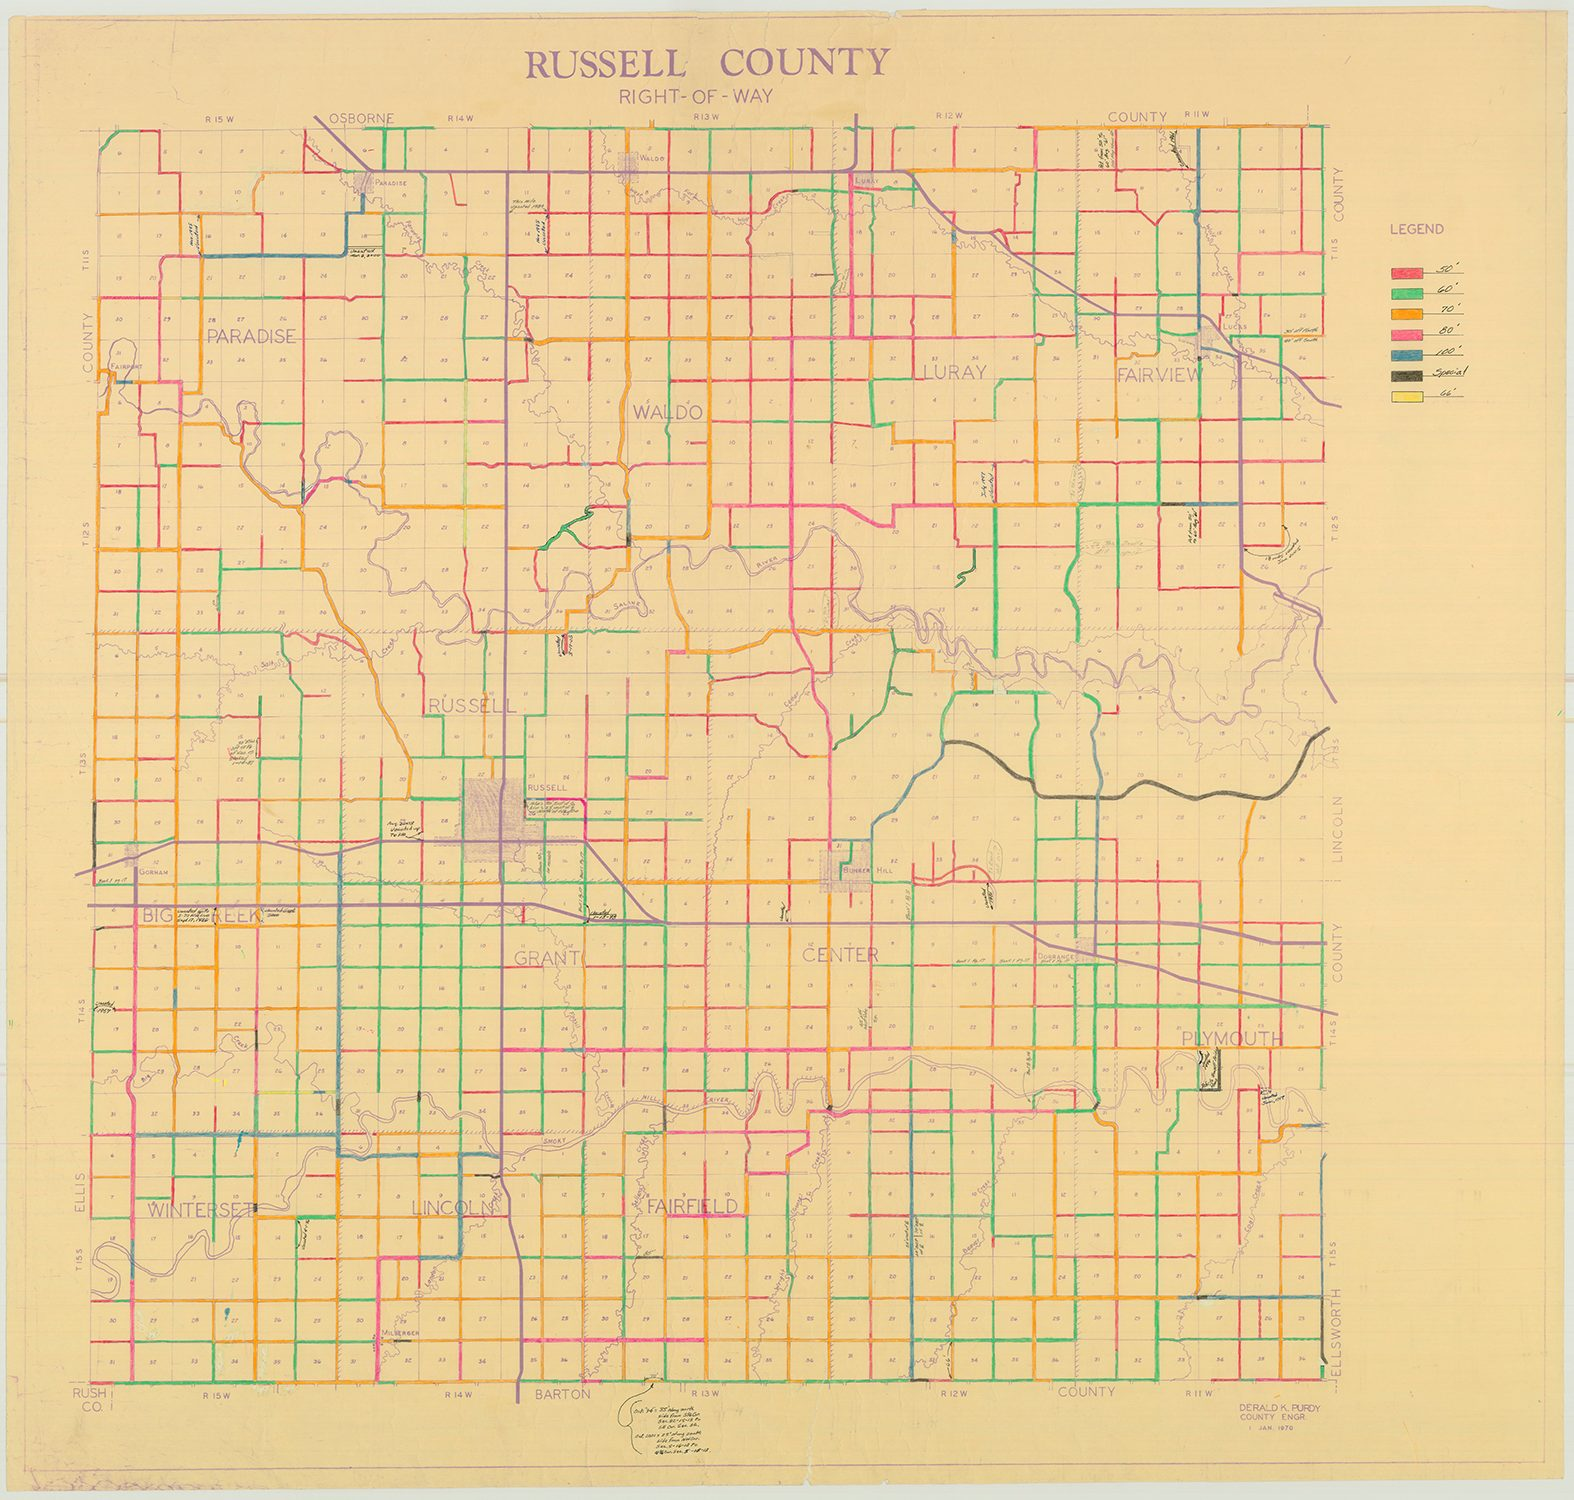 Russell County Road Right of Way Map